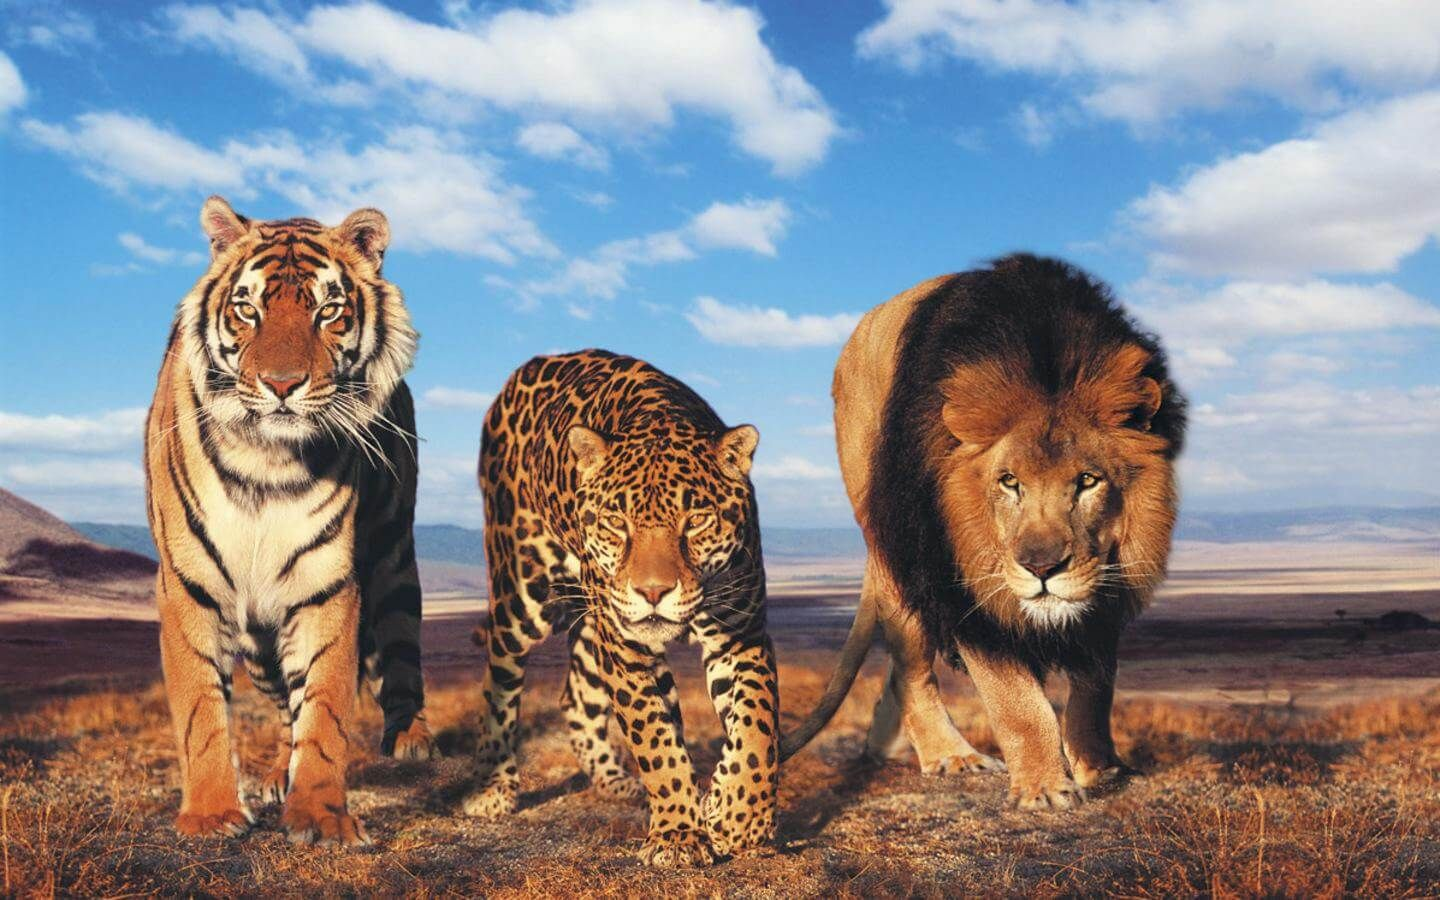 Tiger And Lion Wallpaper 1440×900 Tiger And Lion